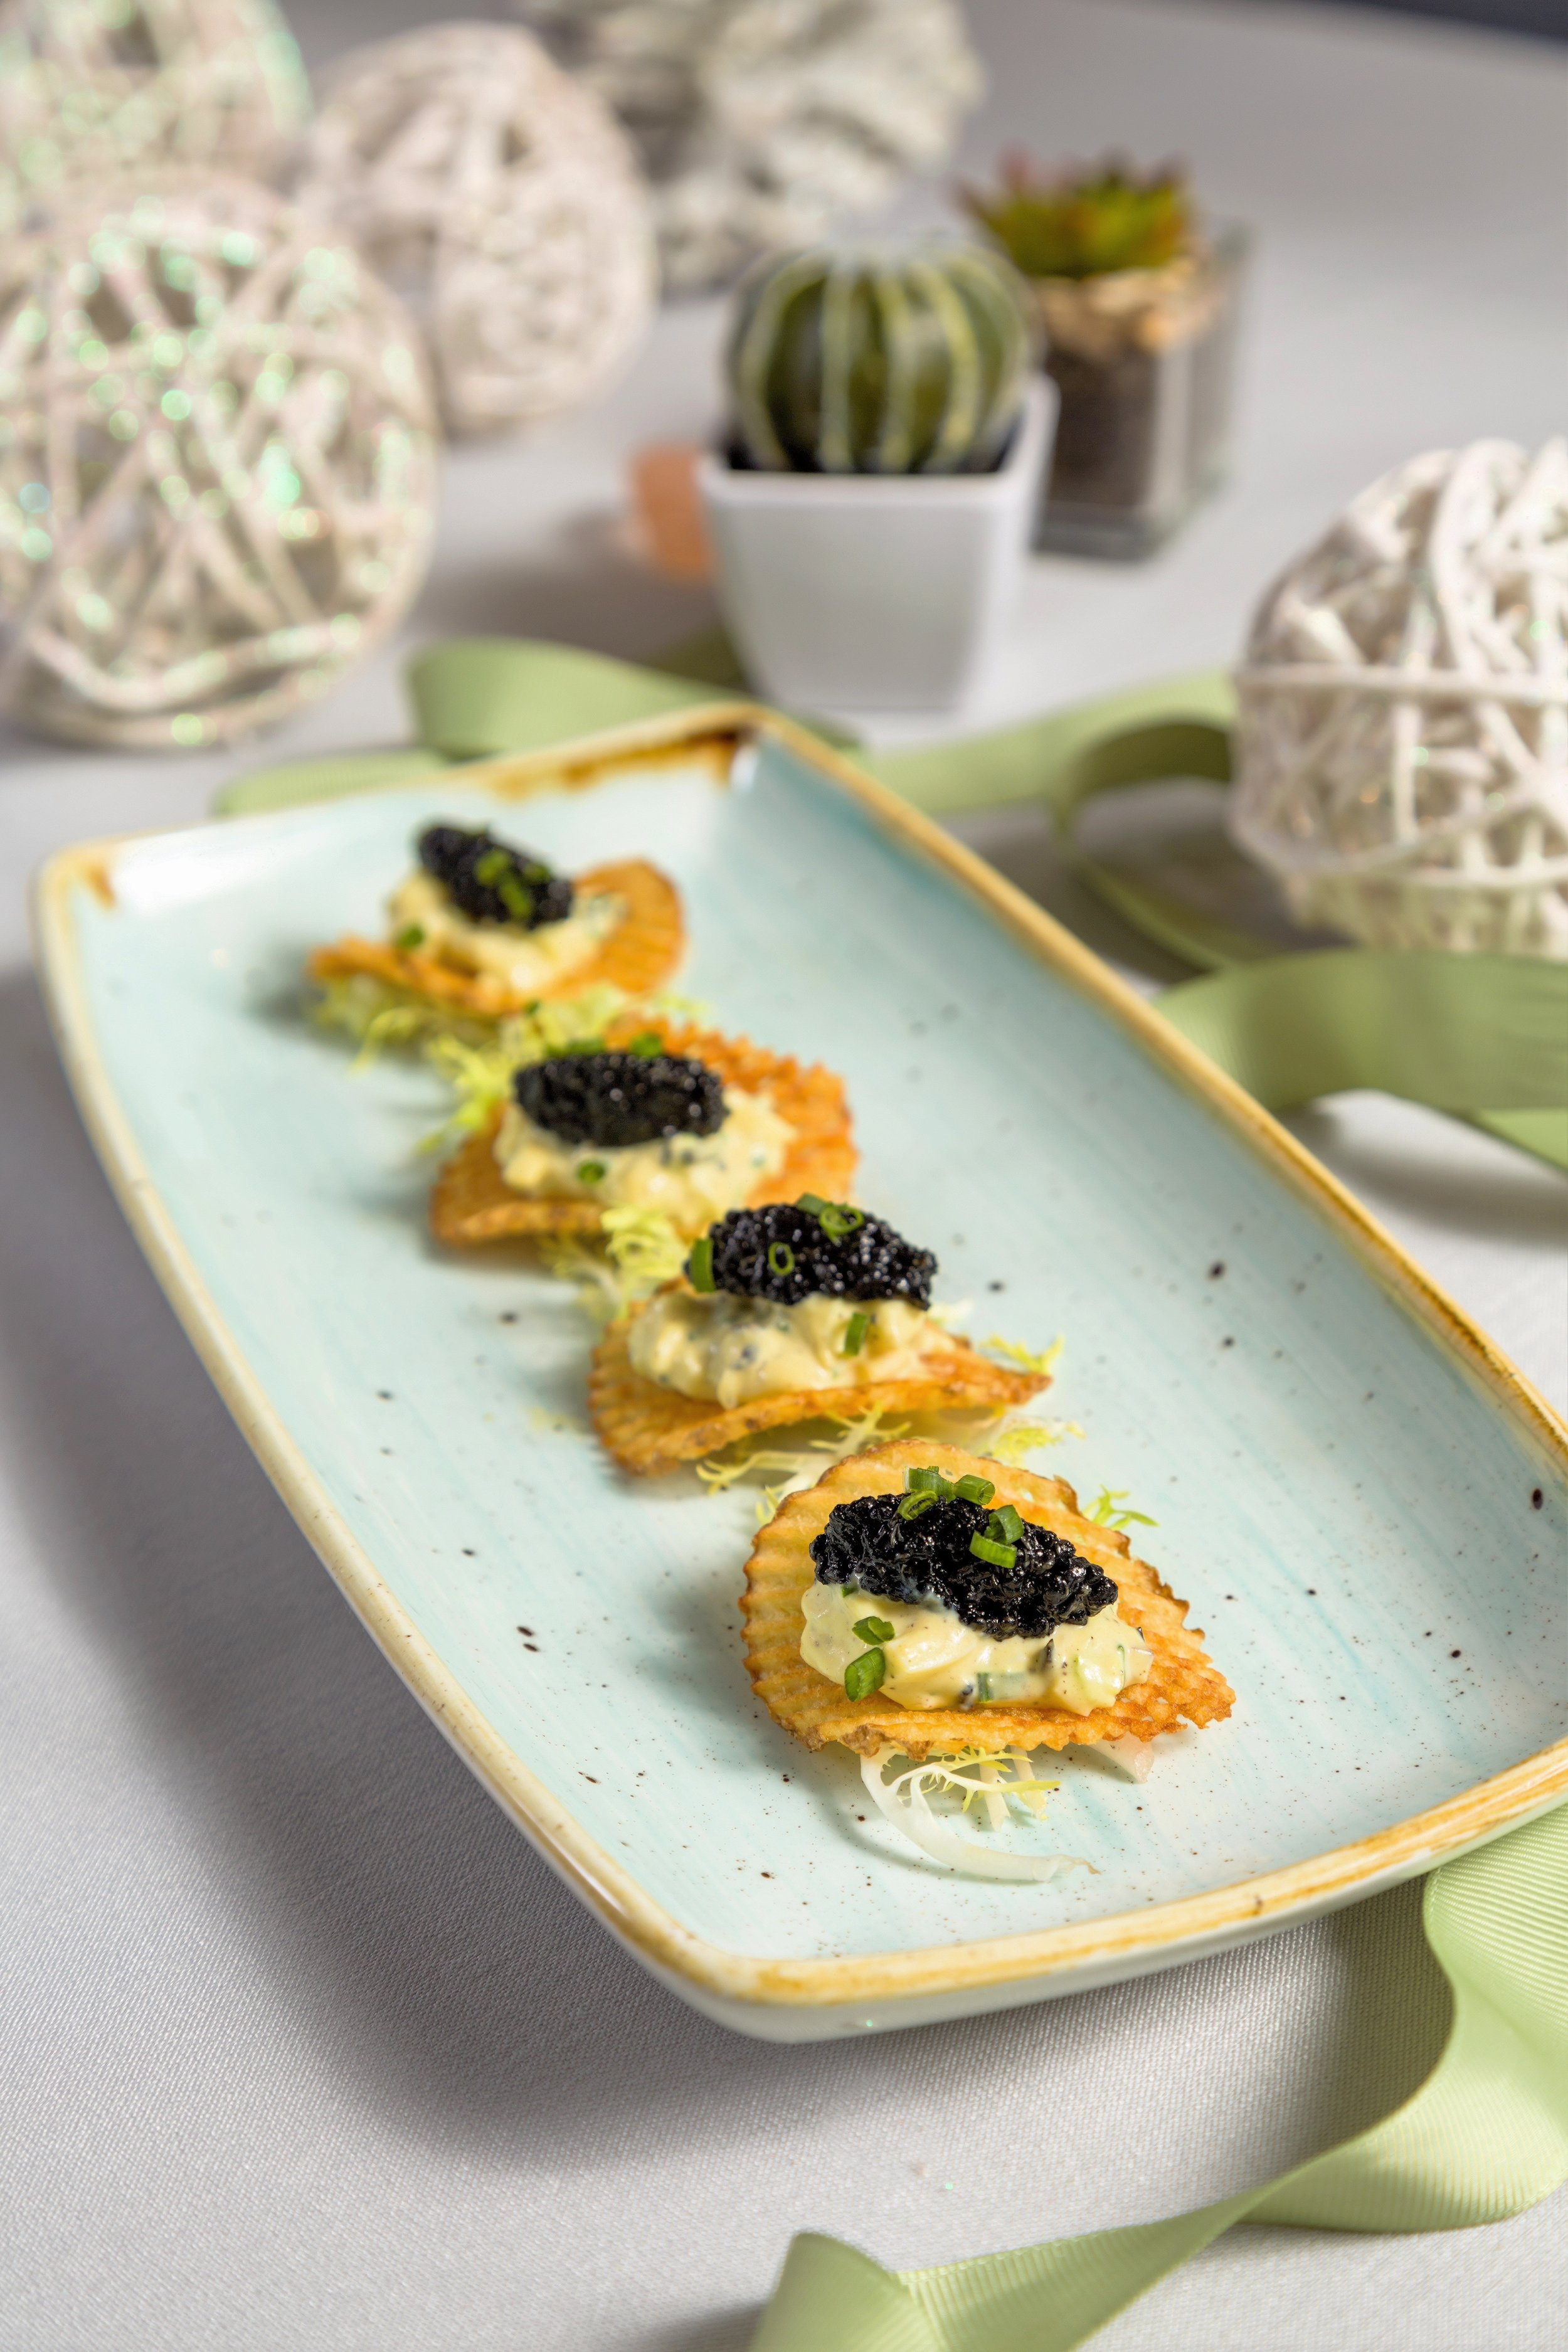 pom puree on gaufrette with caviar.jpg